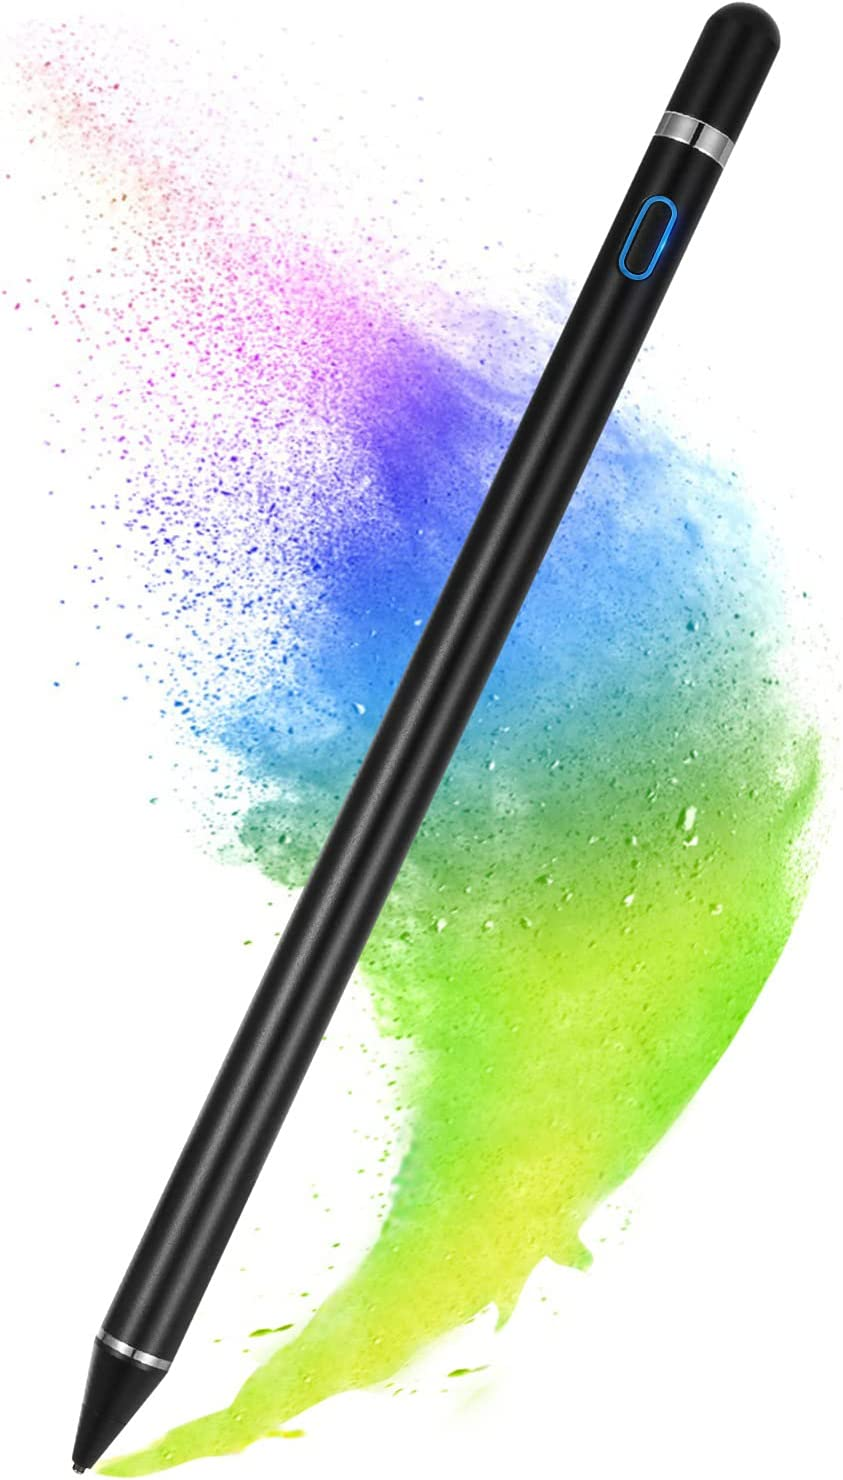 Stylus Pen for Touch Screens, Active Pen Digital Pencil Fine Point Compatible with iPhone iPad and Other Tablets (Black)